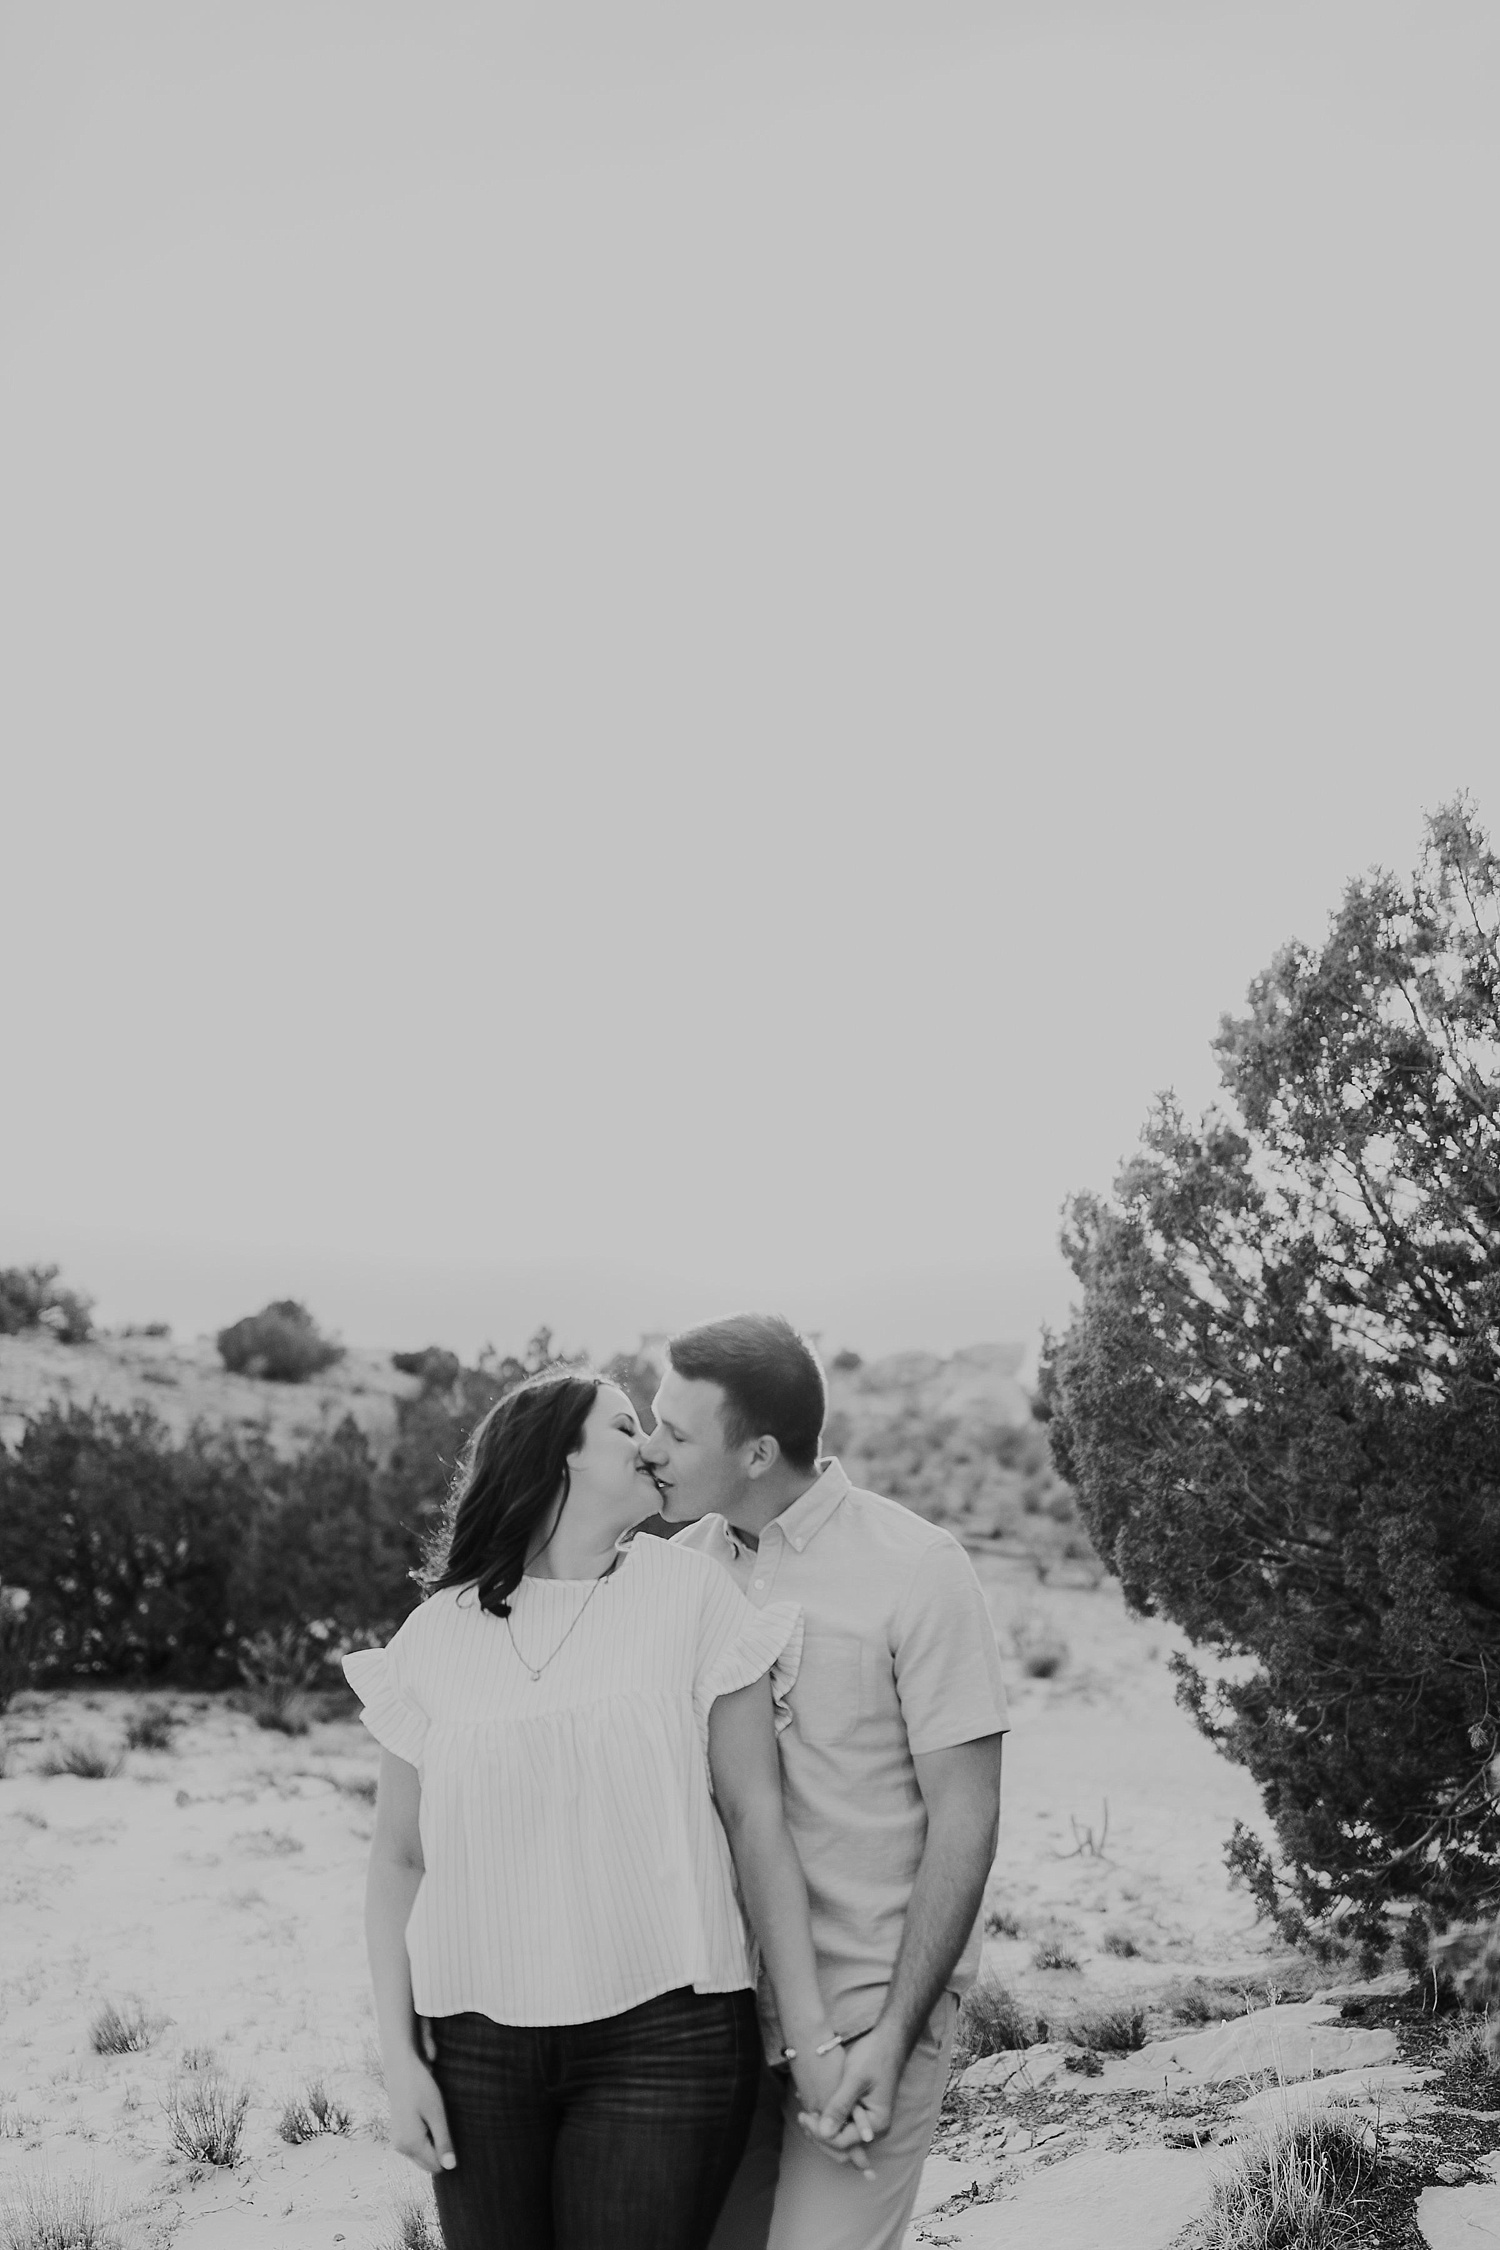 Alicia+lucia+photography+-+albuquerque+wedding+photographer+-+santa+fe+wedding+photography+-+new+mexico+wedding+photographer+-+new+mexico+engagement+-+desert+engagement_0003.jpg